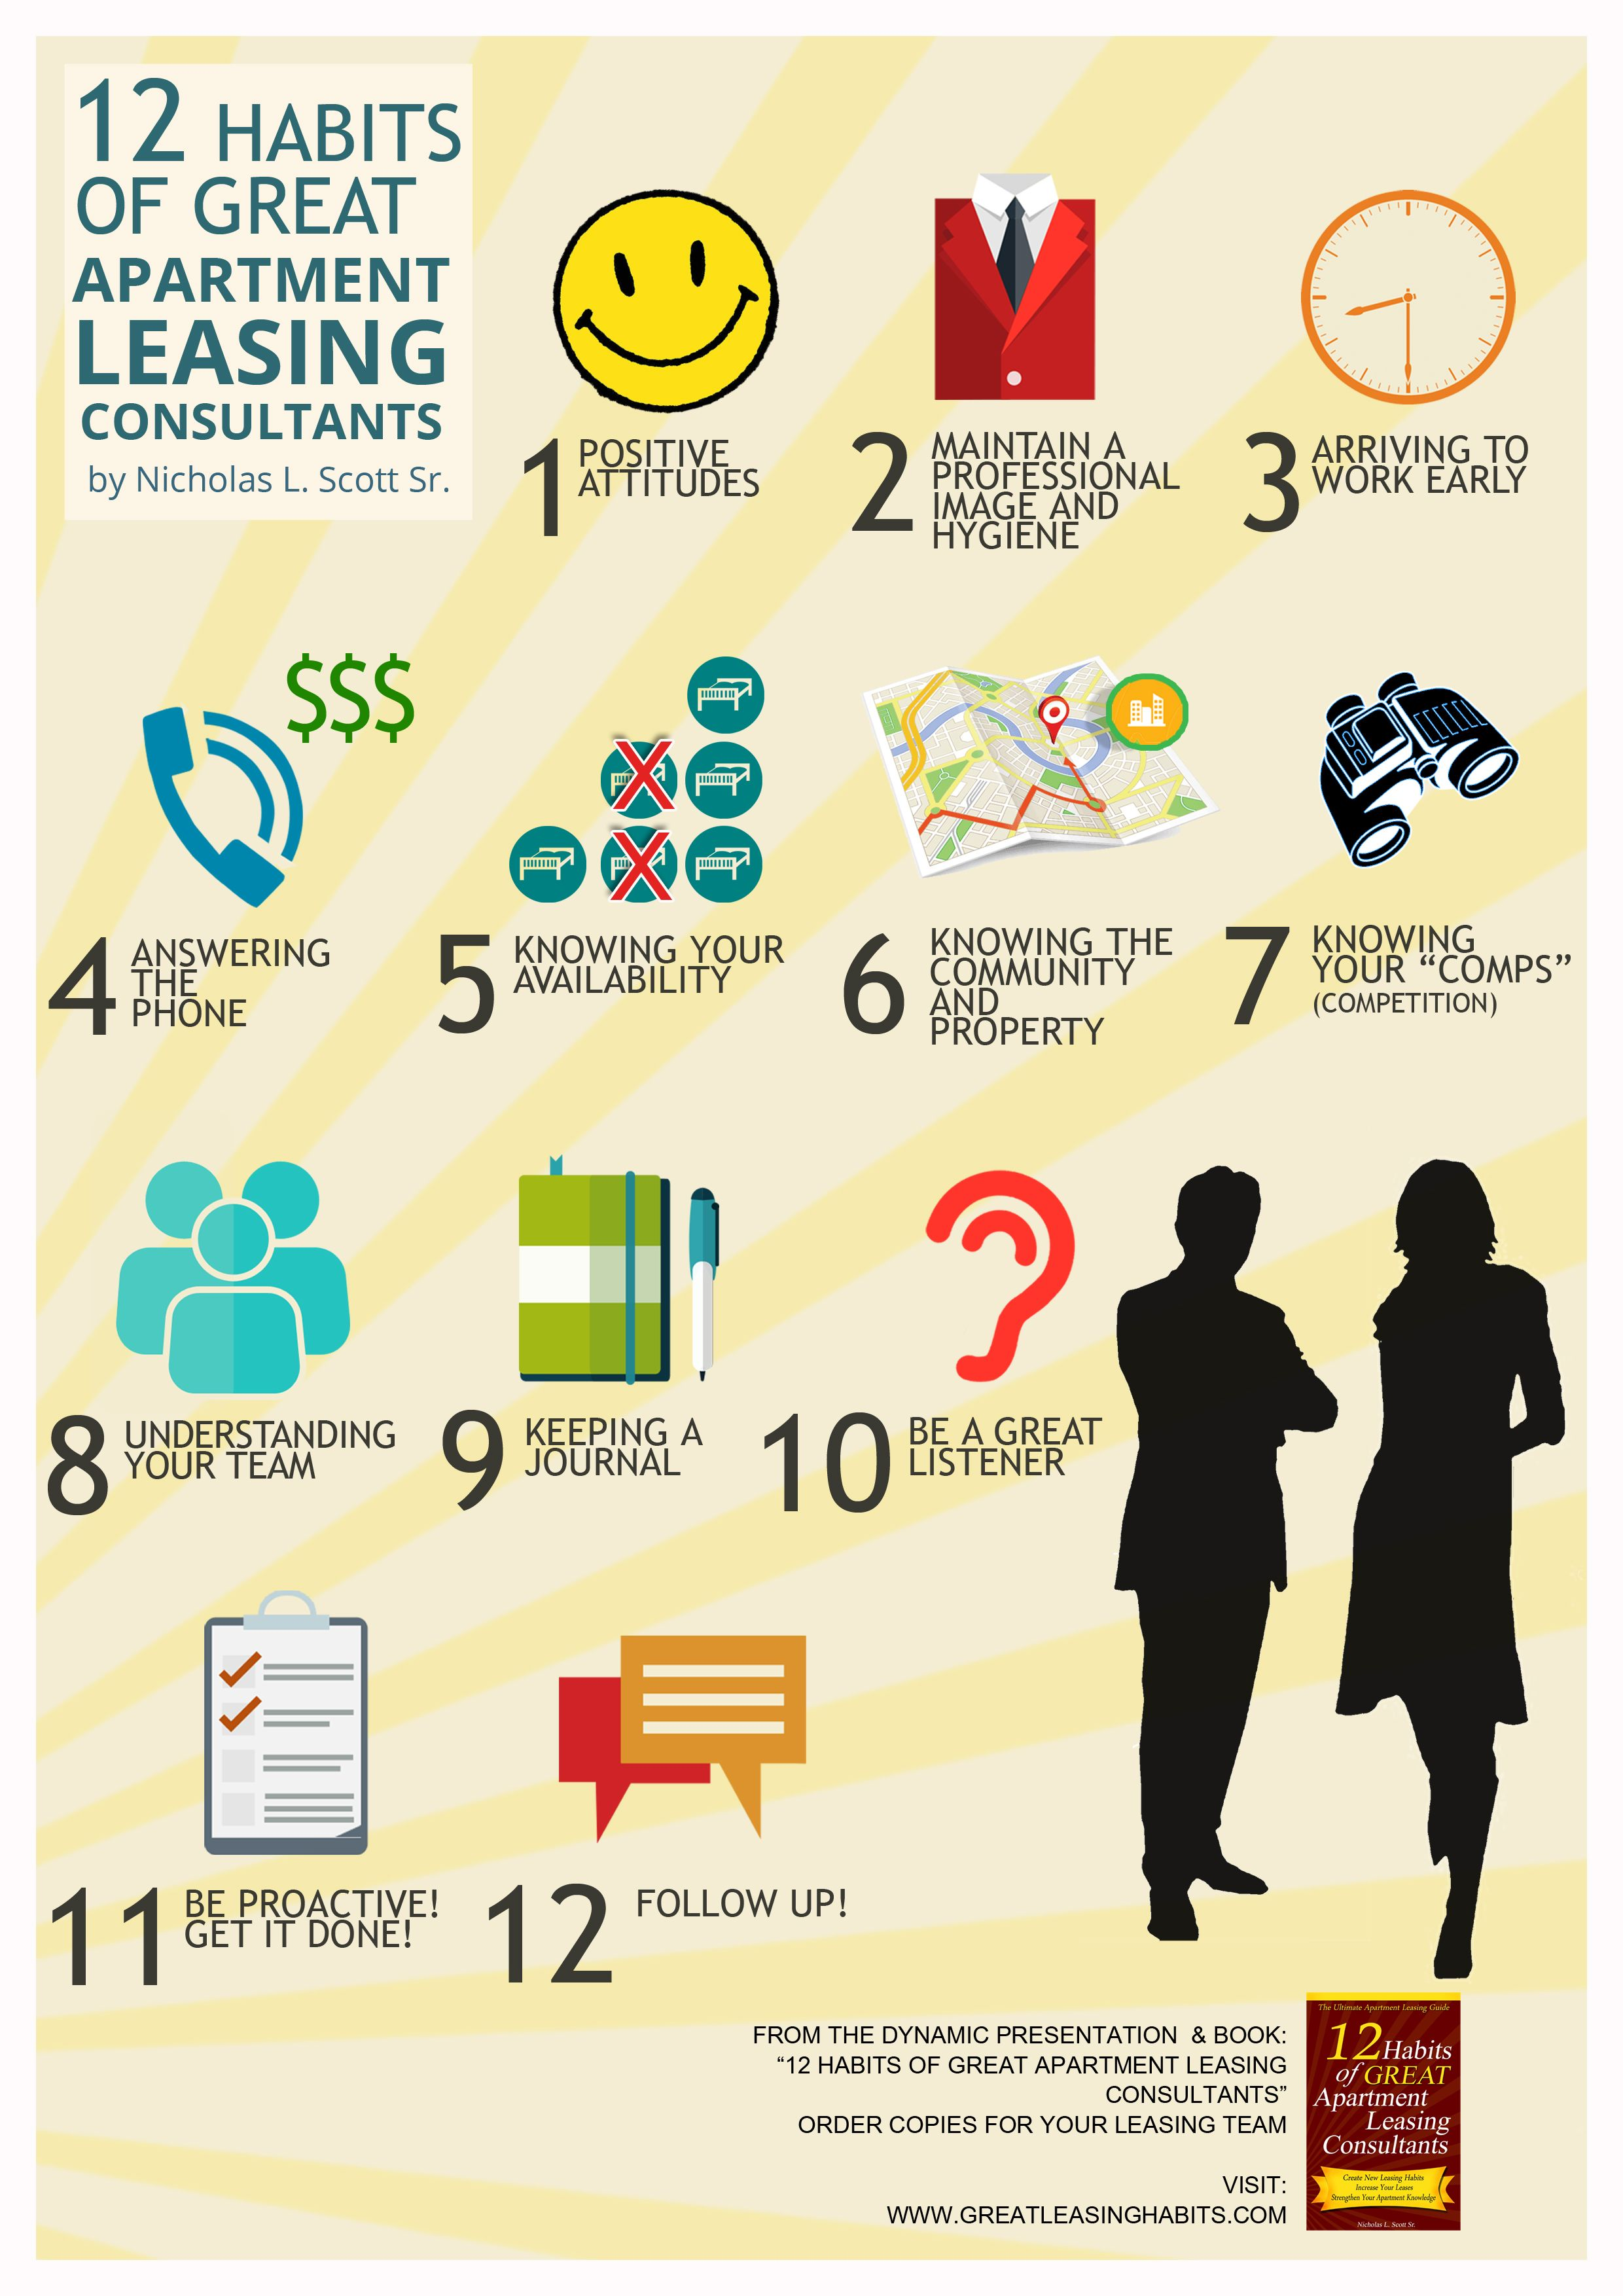 love my apartment facebook contest resident events introducing the 12 habits of great apartment leasing consultants info graphic from